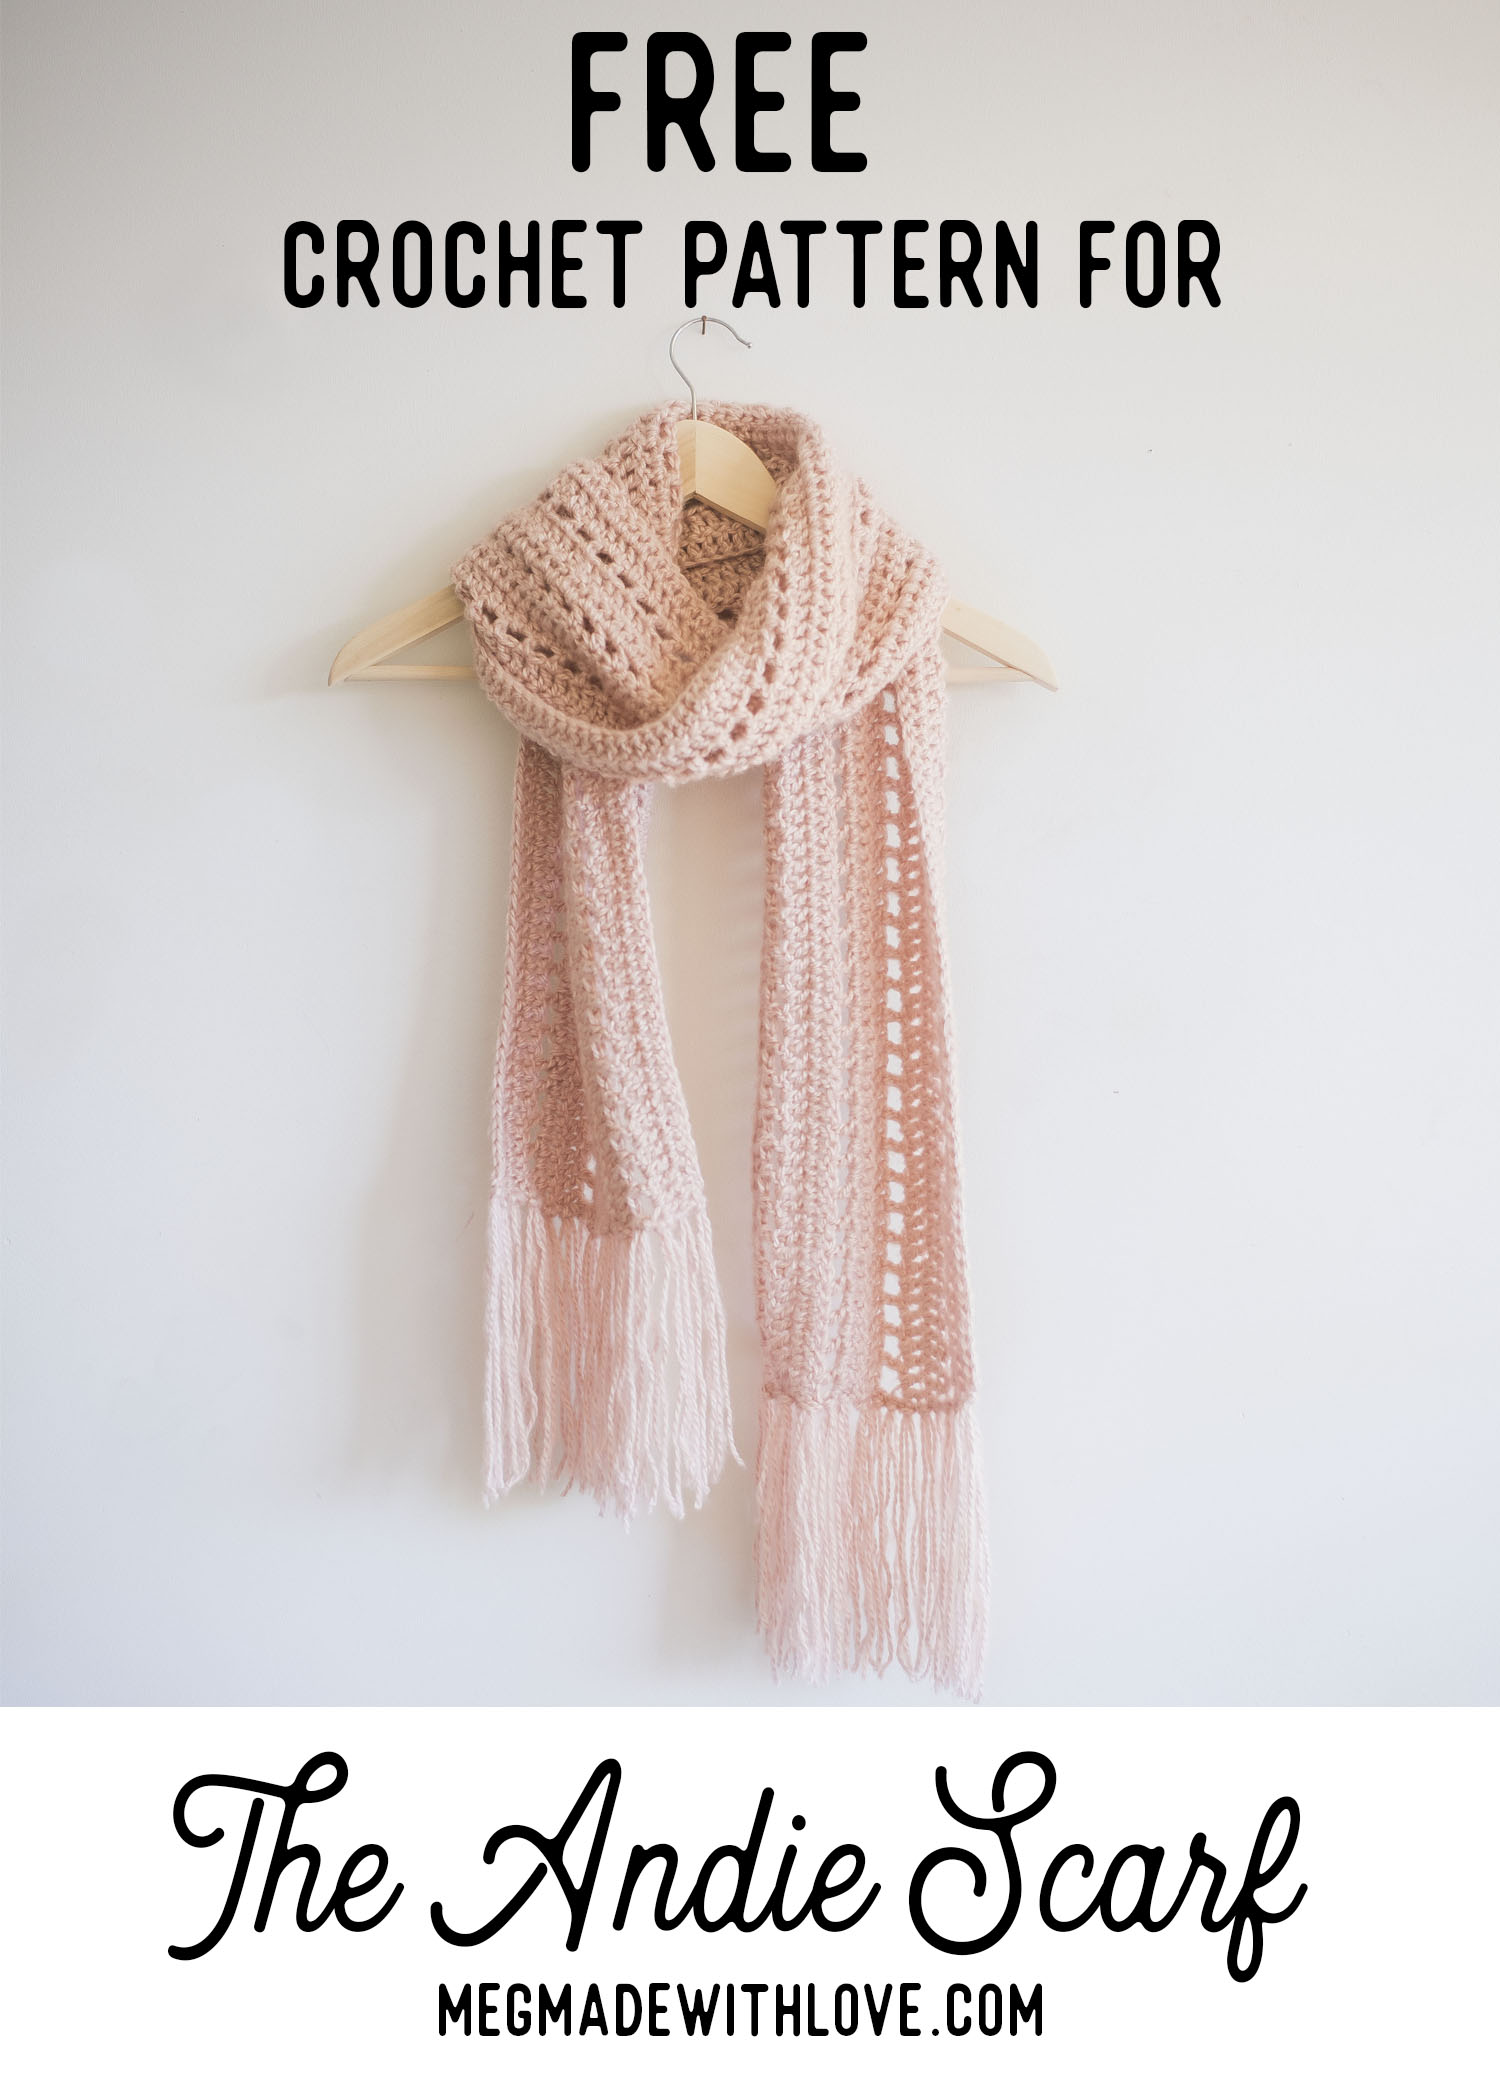 Free Crochet Pattern for the Andie Scarf